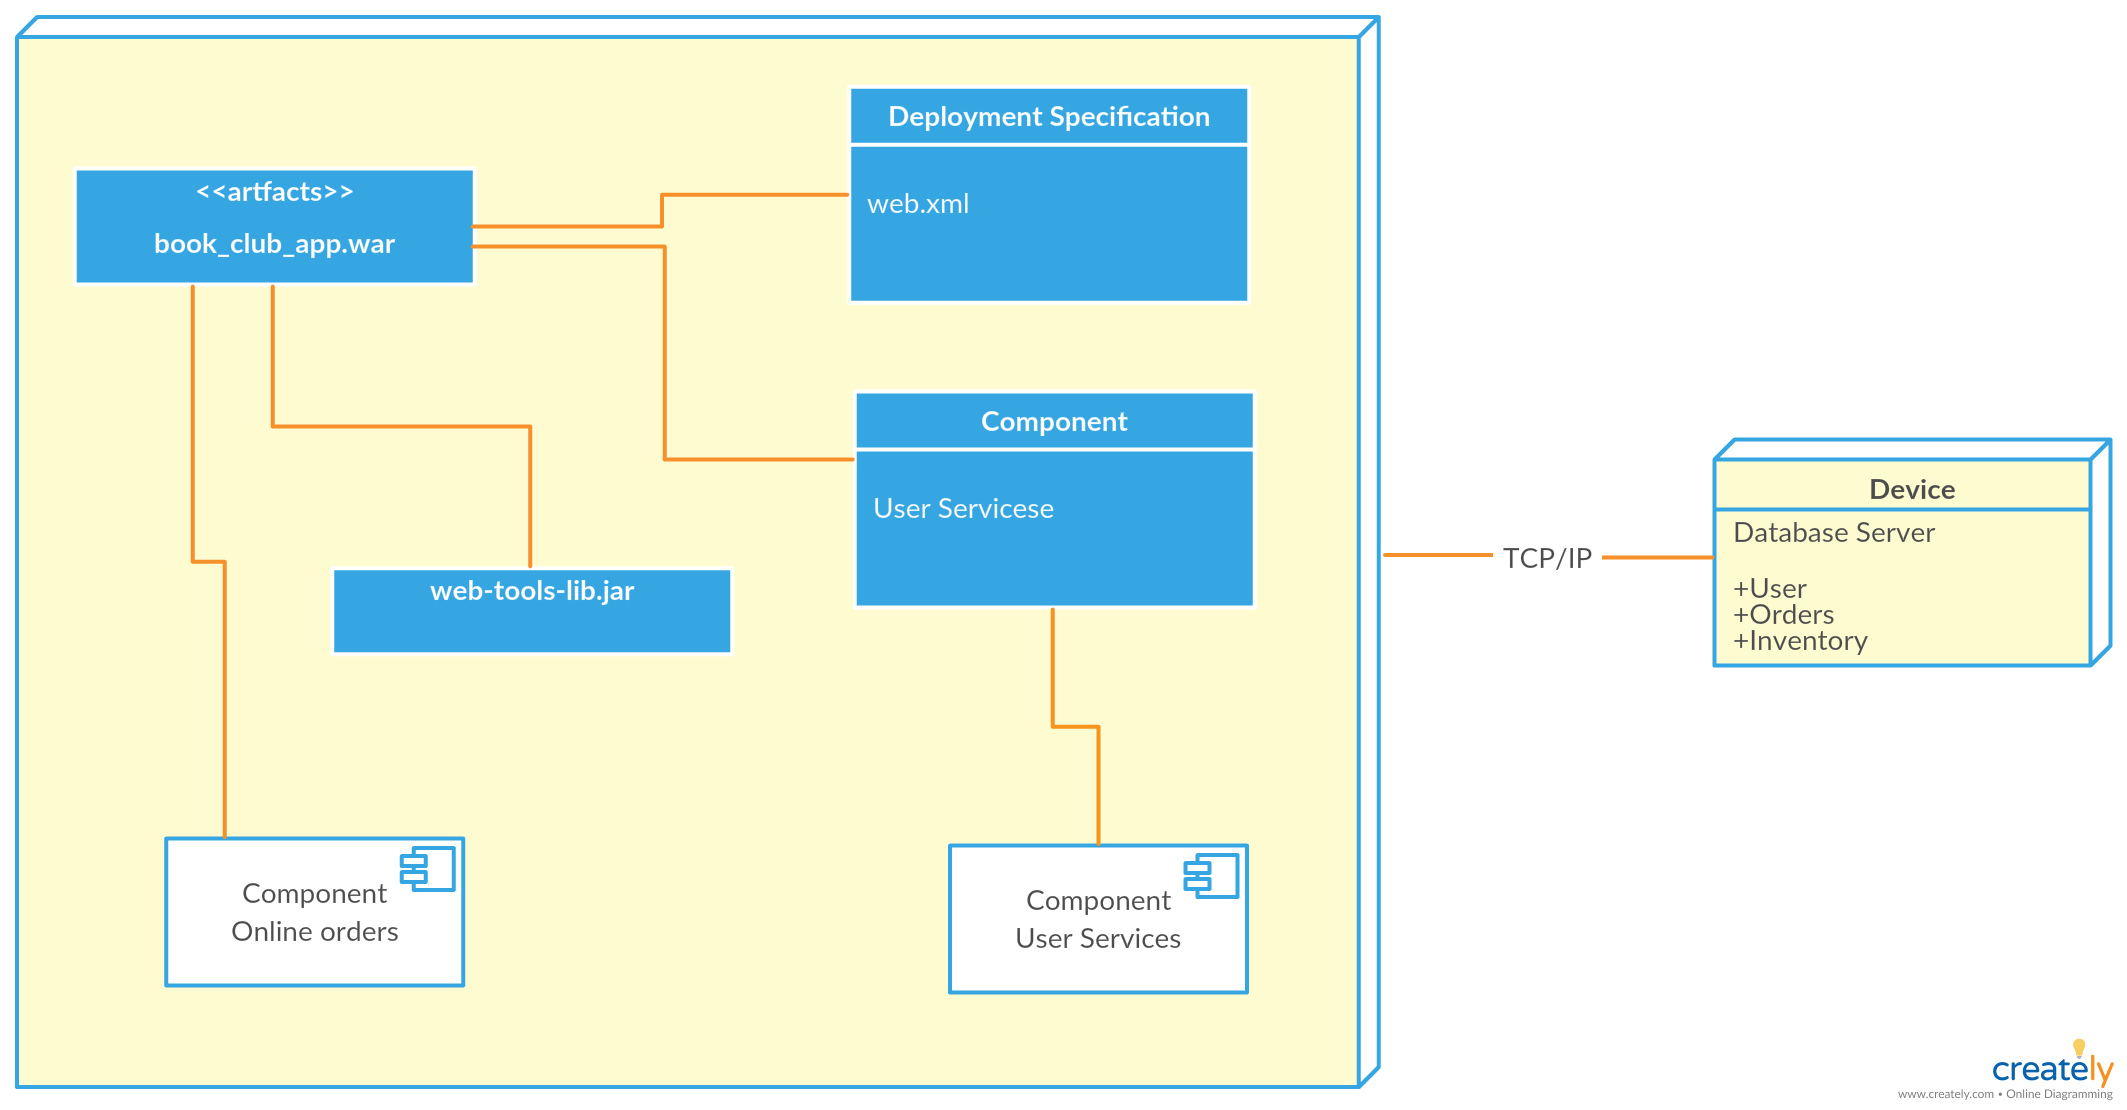 deployment diagram for online shopping system deployment diagram template illustrates the online shopping system  [ 2127 x 1110 Pixel ]